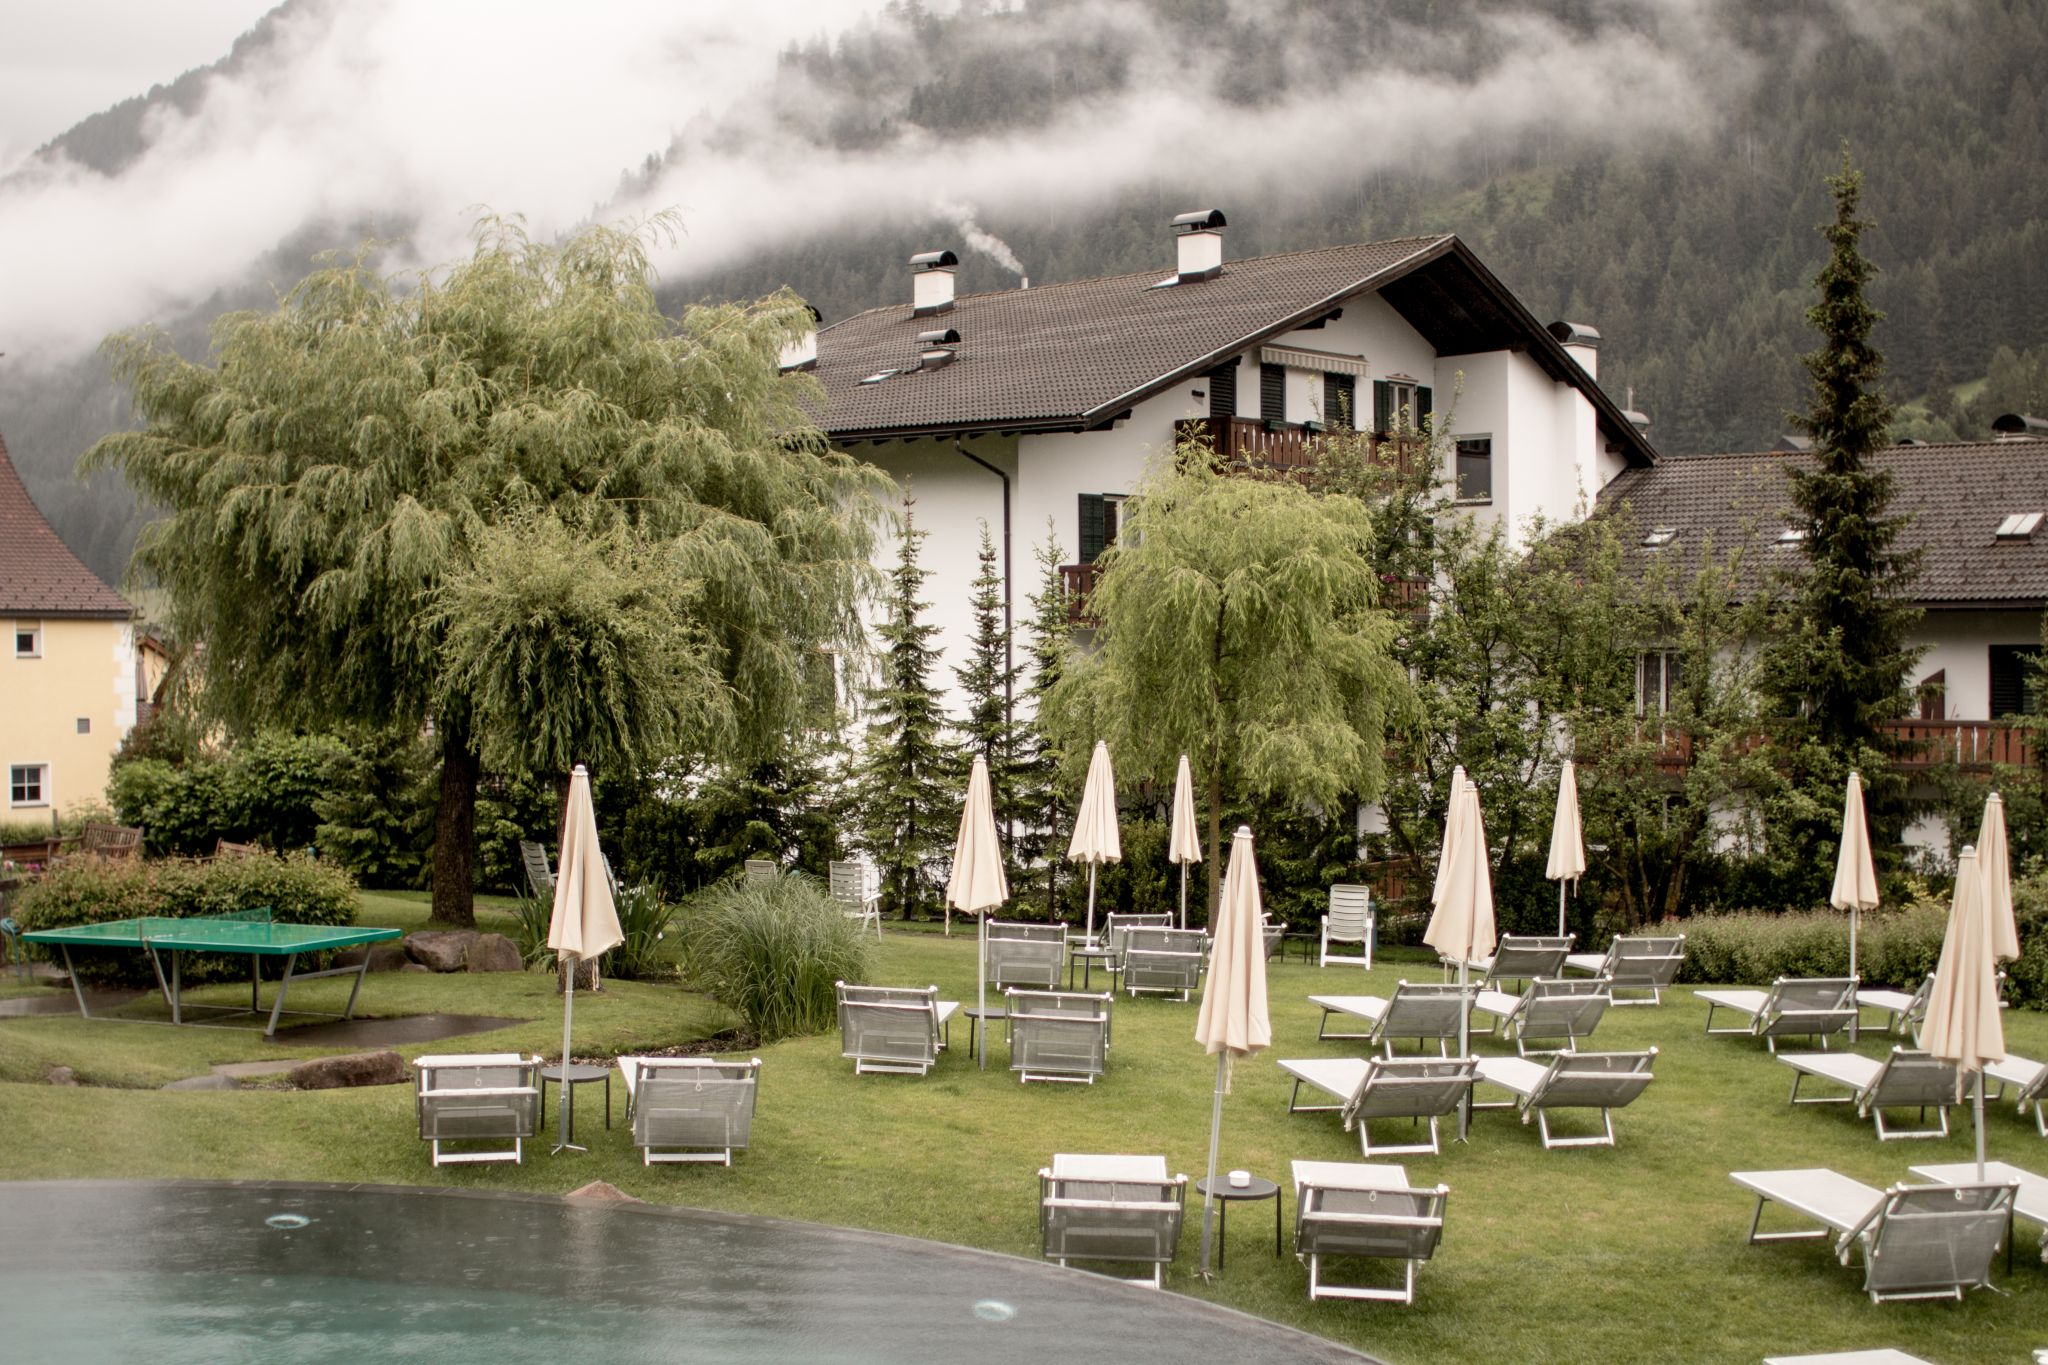 Adler Dolomites Hotel Ortisei Italy Hotel Review Exterior poolside clouds